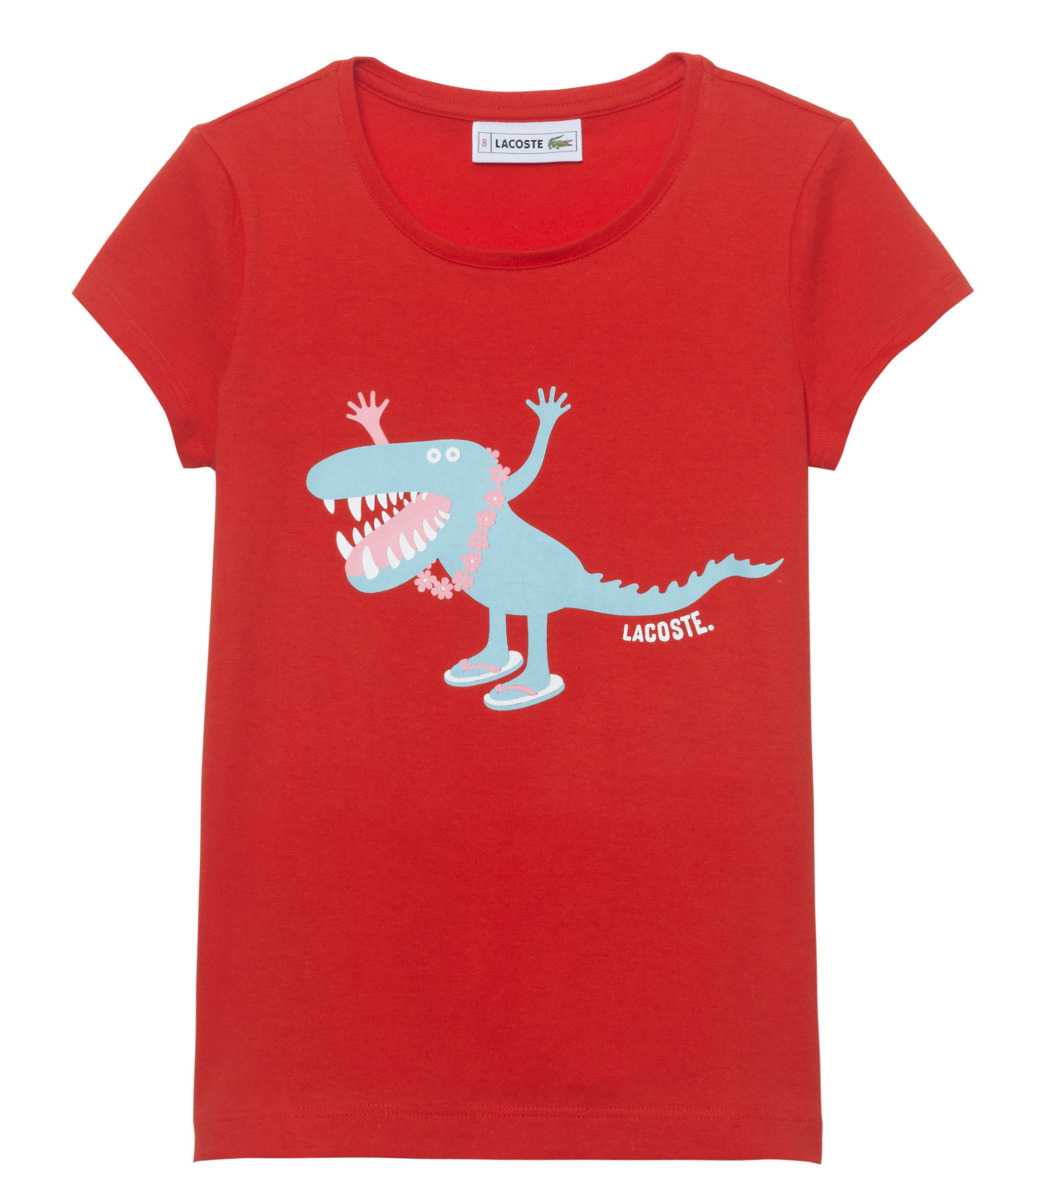 """Geneviève Gauckler / Product & Licensing  / Lacoste T-shirts<span class=""""slide_numbers""""><span class=""""slide_number"""">6</span>/6</span>"""